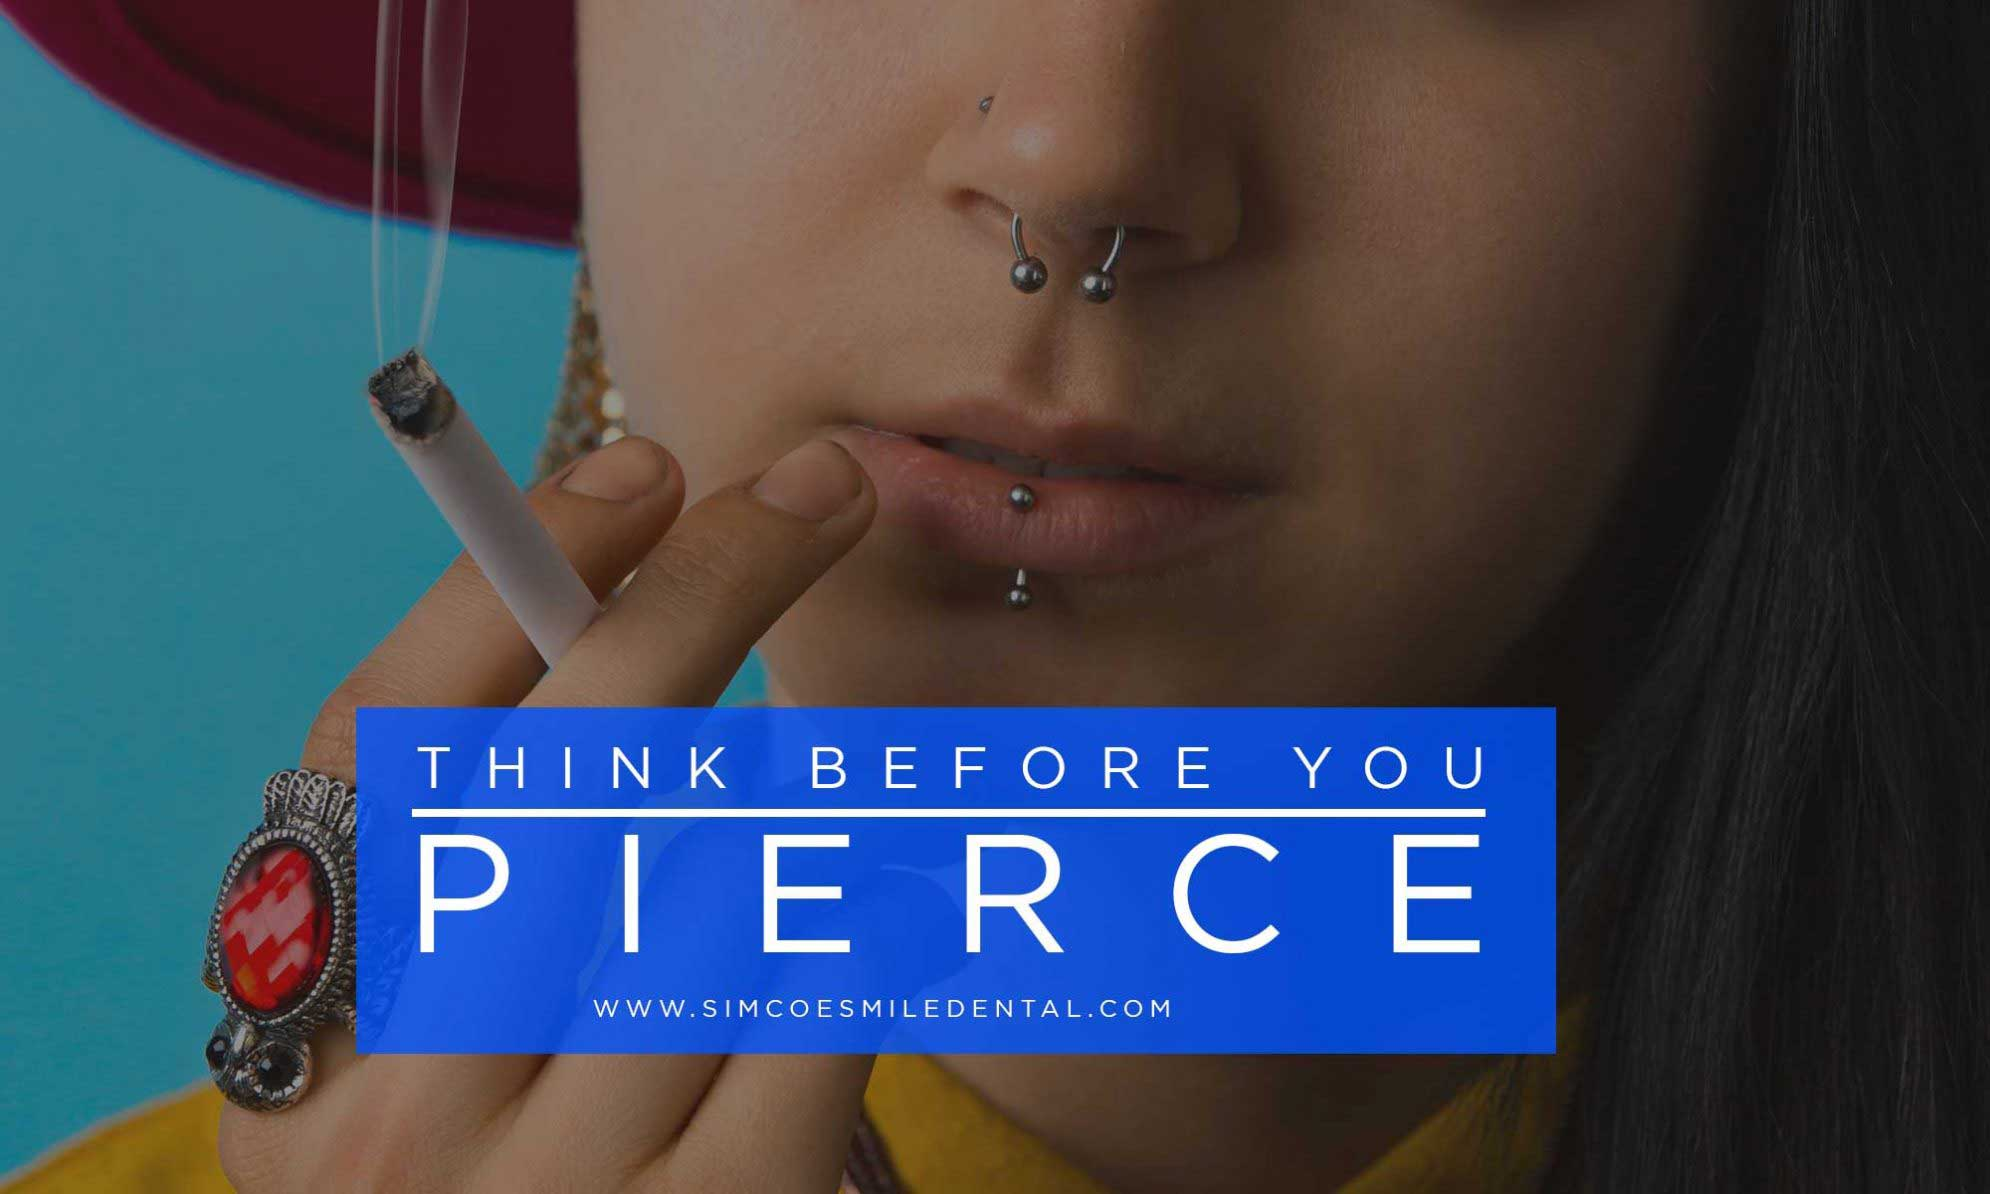 Think-before-you-pierce-e1538749521616 Lifestyle Changes Make Mouths Healthier:  Feel Better, Get Stronger Overall